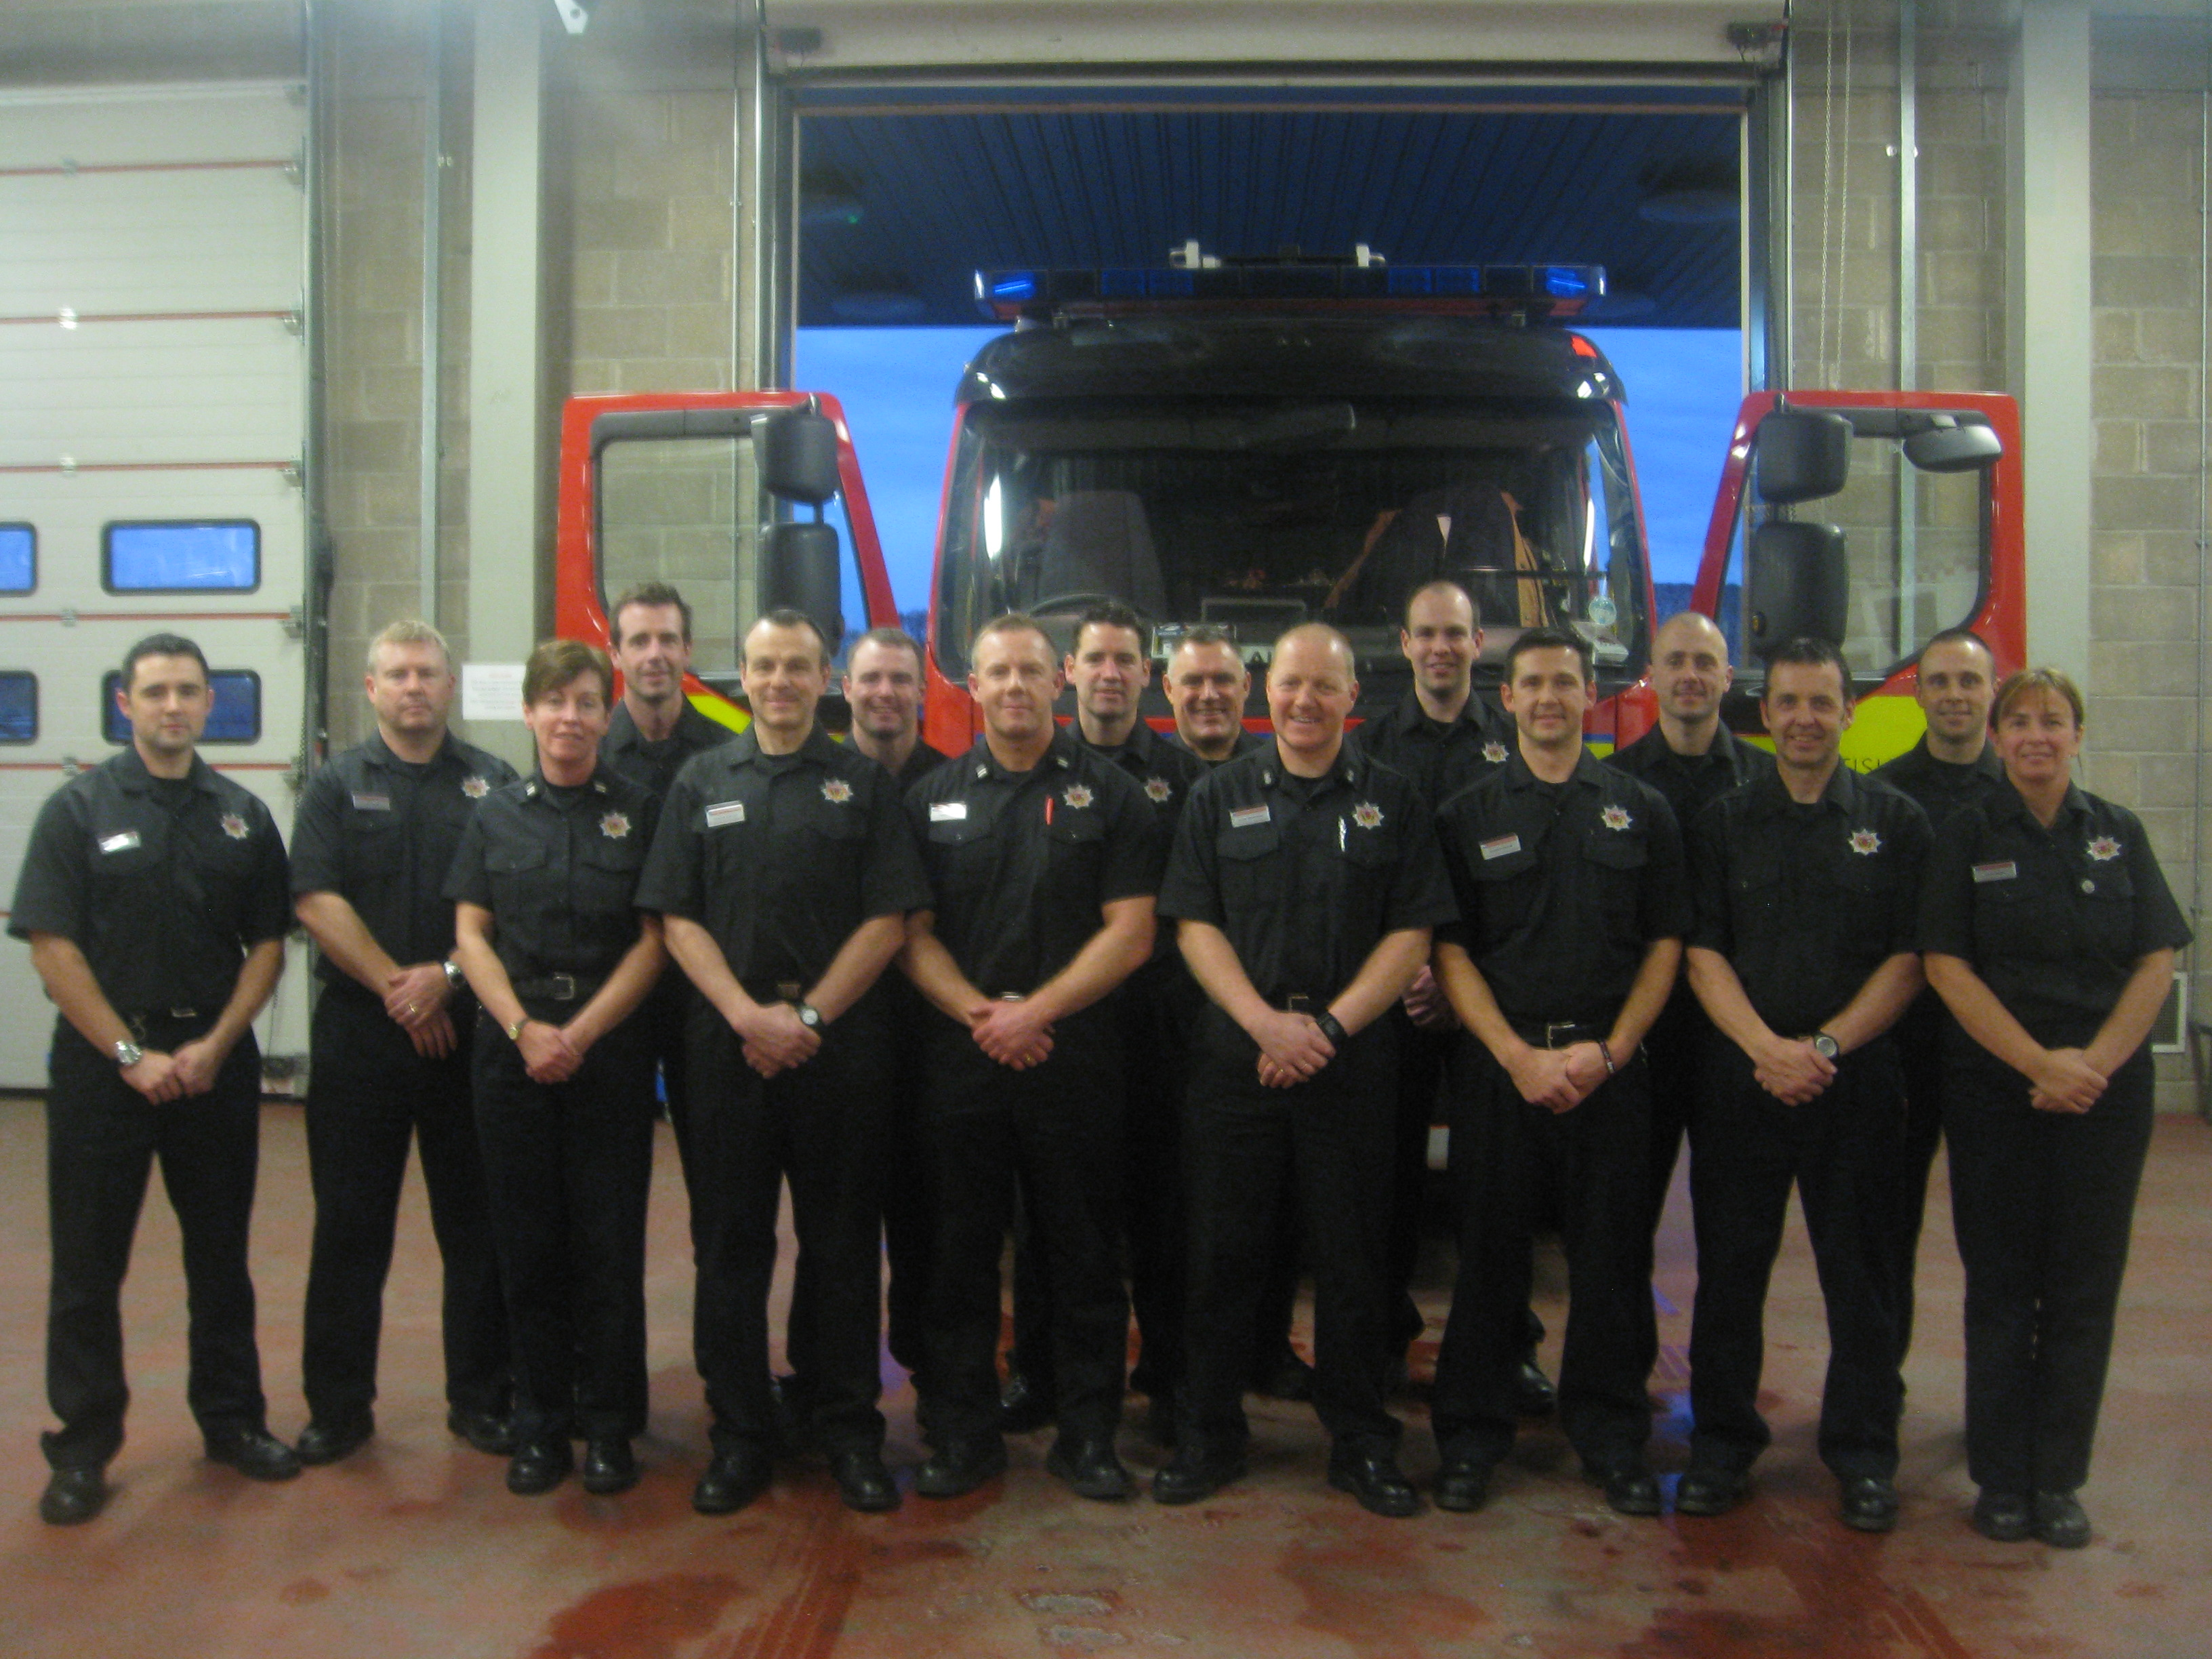 Dunfermline watch manager retires after 30 years